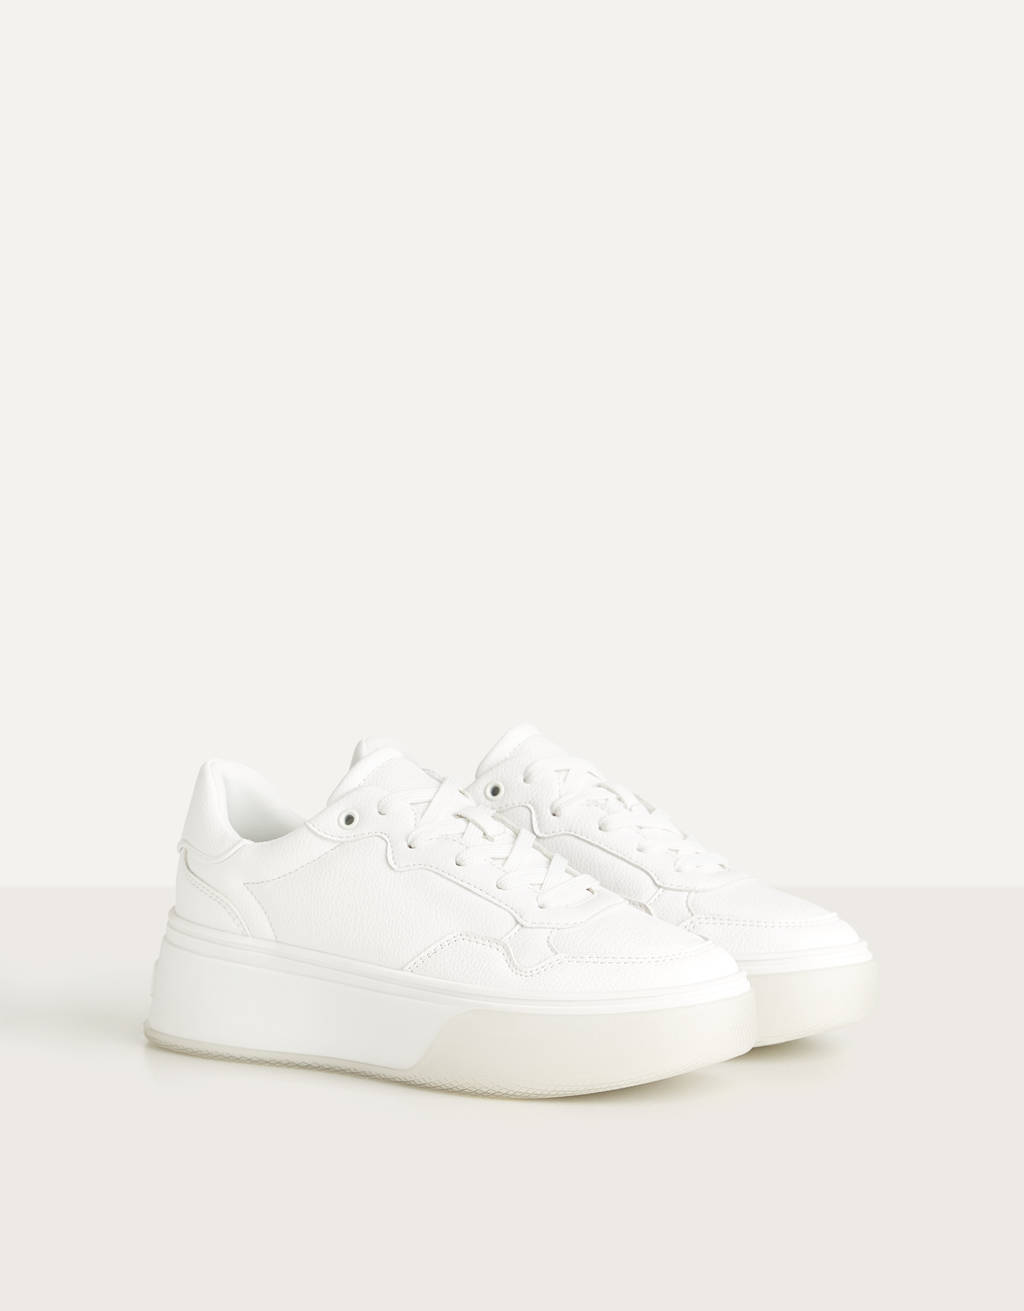 Platform trainers with translucent sole